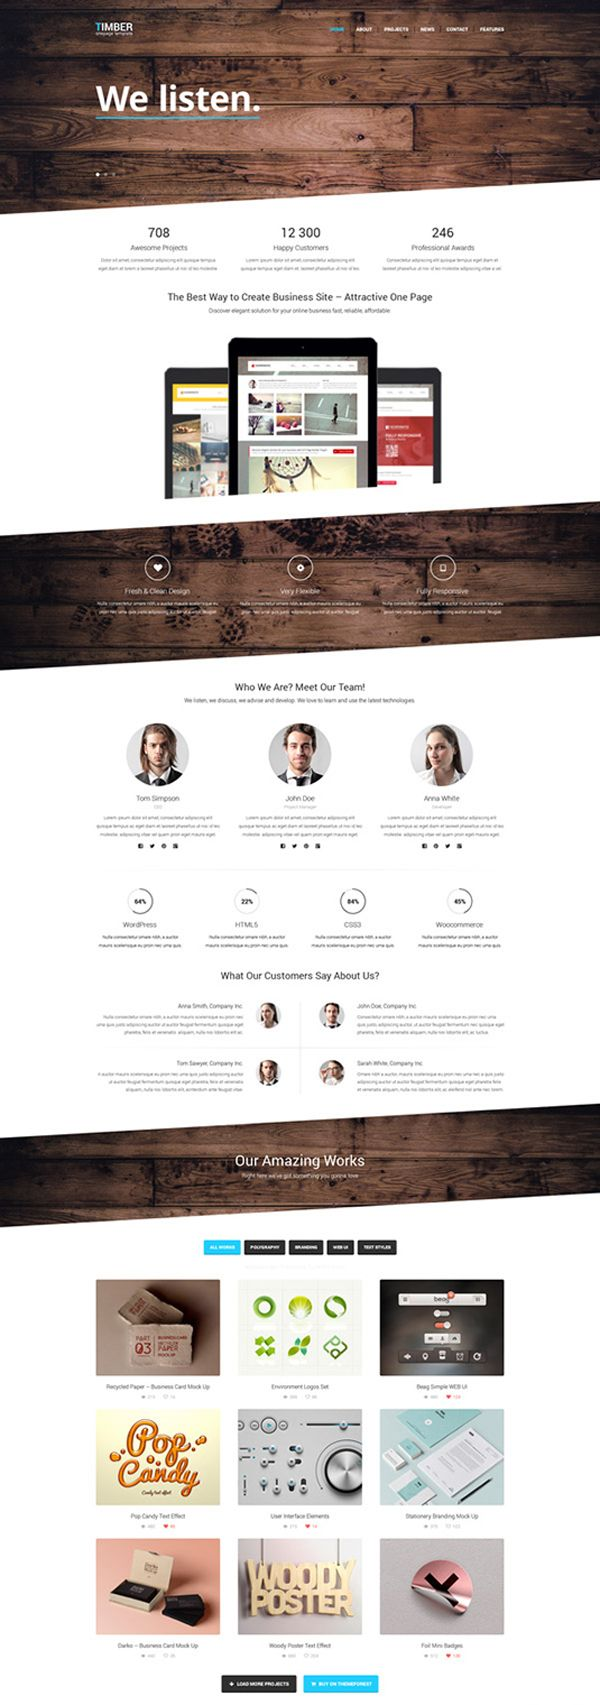 Timber - Free One Page Bootstrap Template | WEBデザイン参考 ...